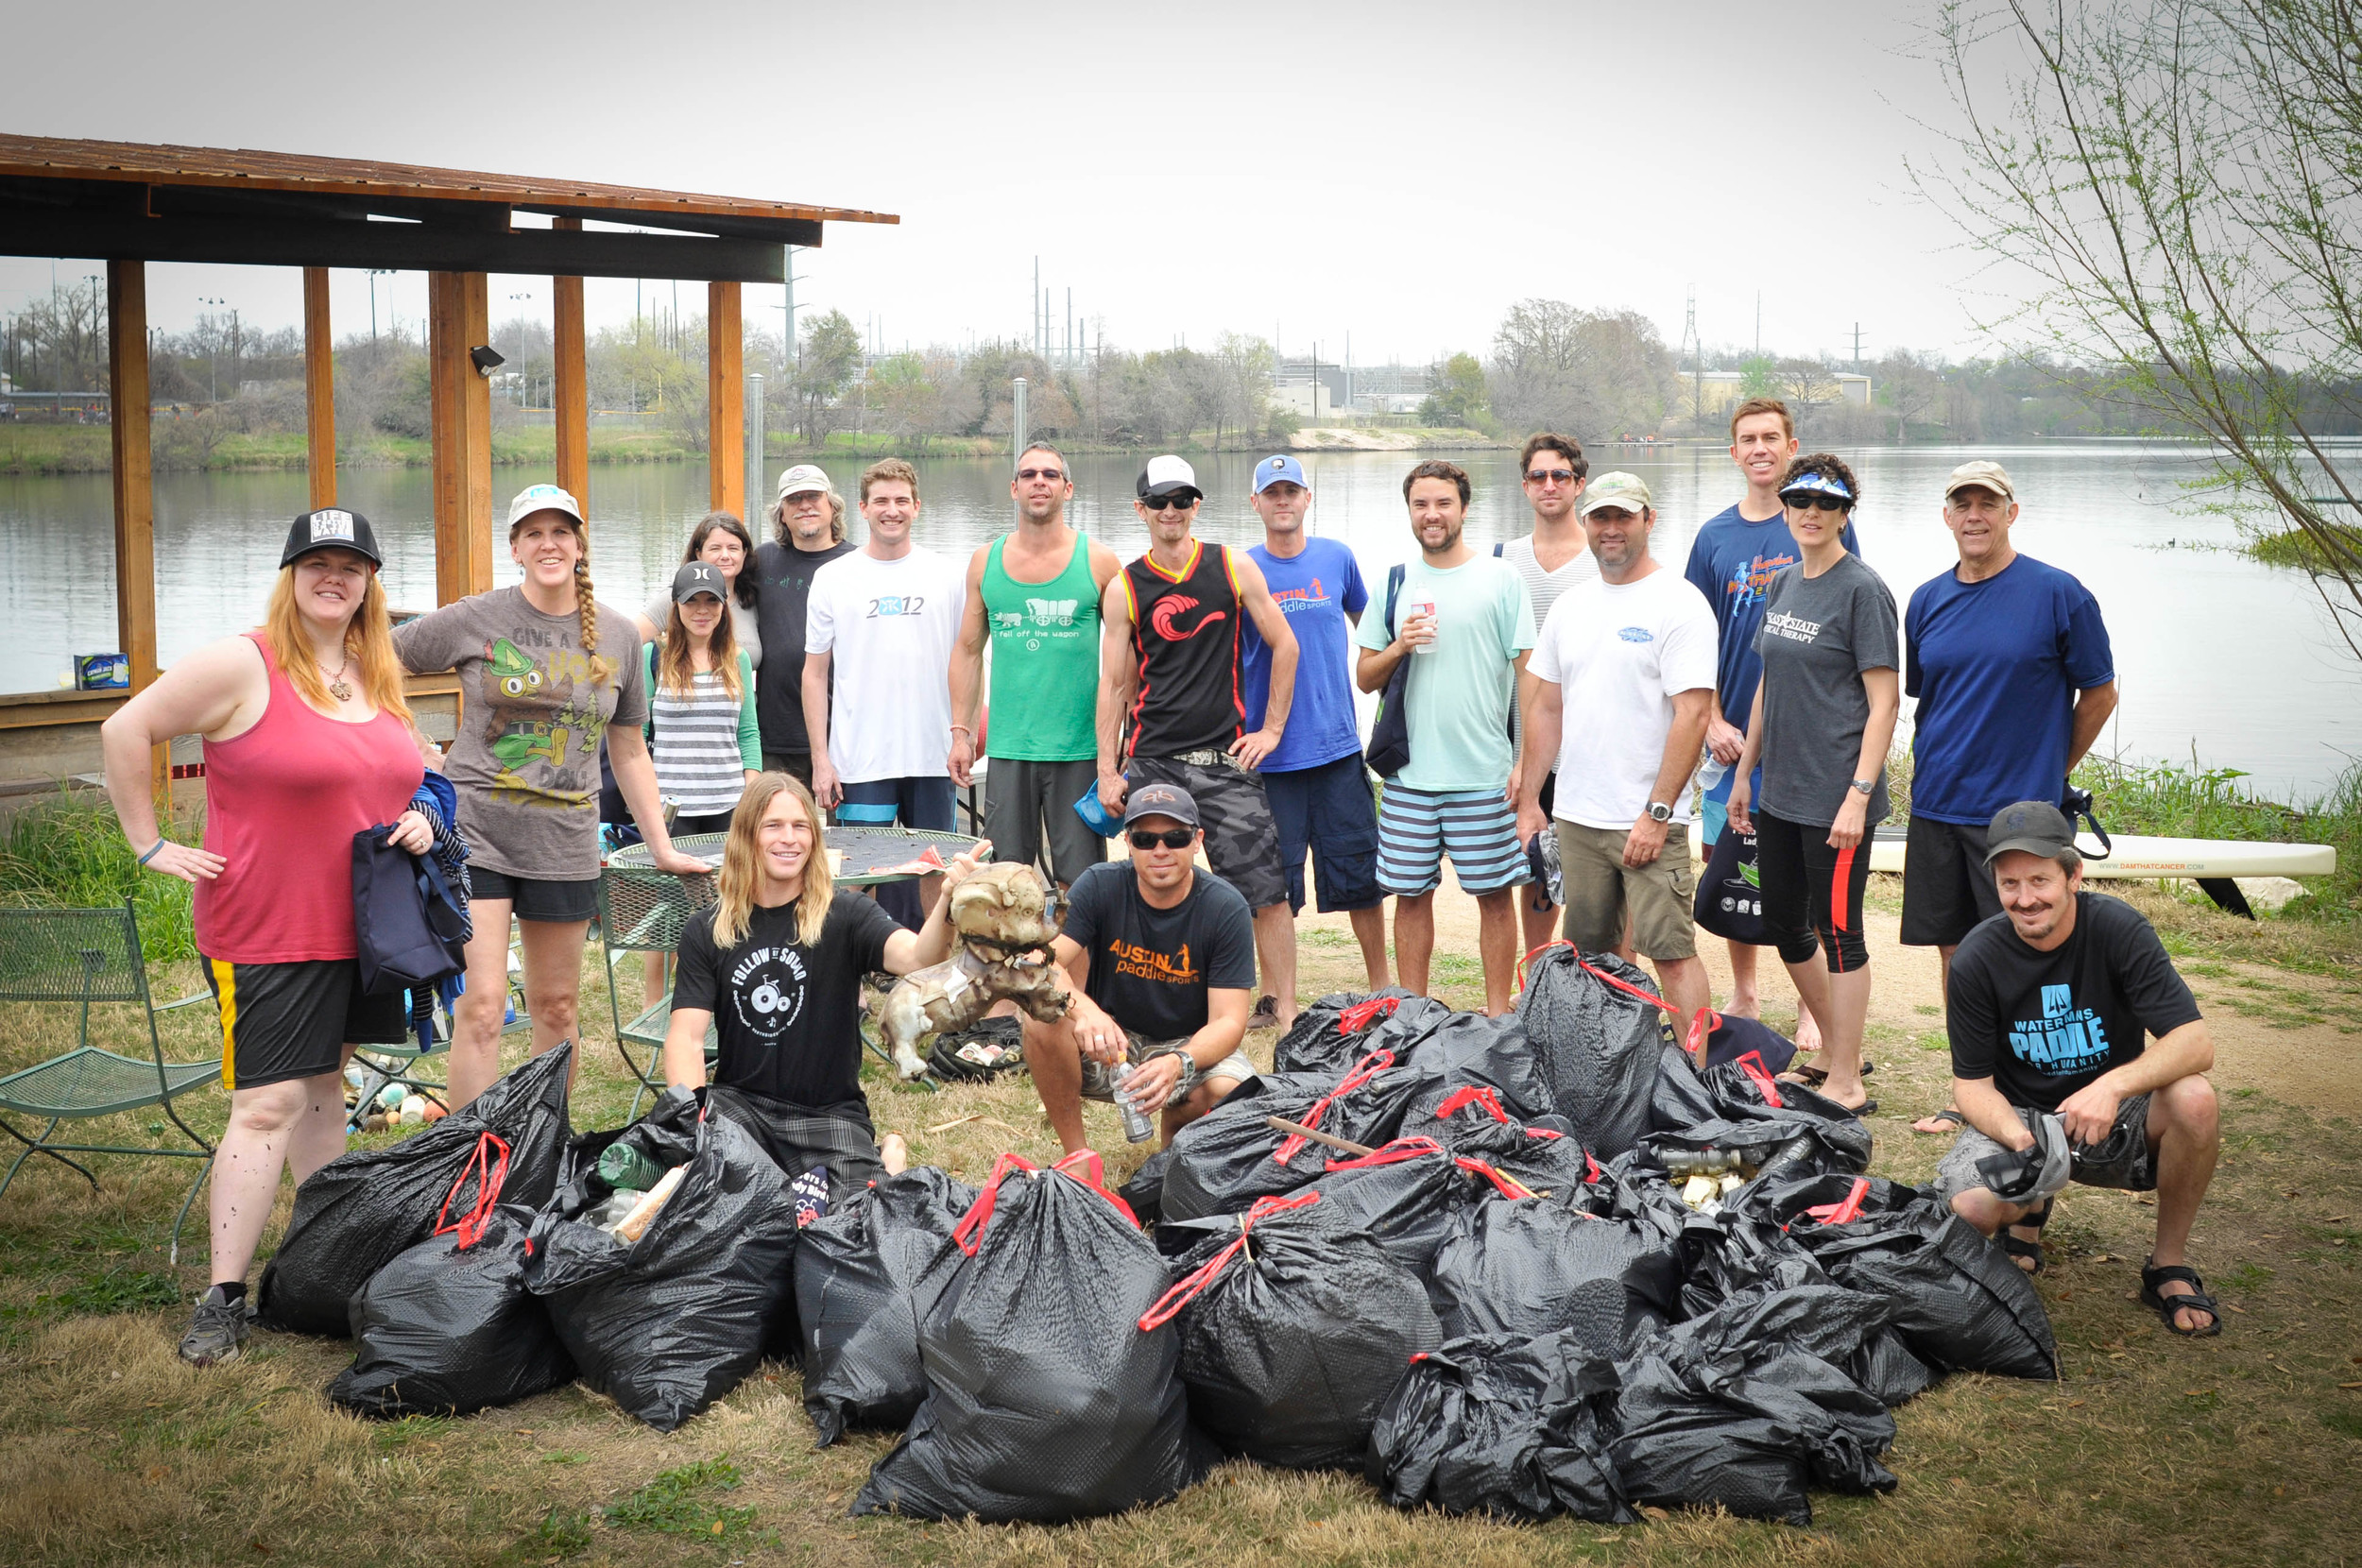 Spring Cleaning and several lake clean up crews throughout the nation including the Centex SUP crew founded by Linda Mccoy-Schreiver